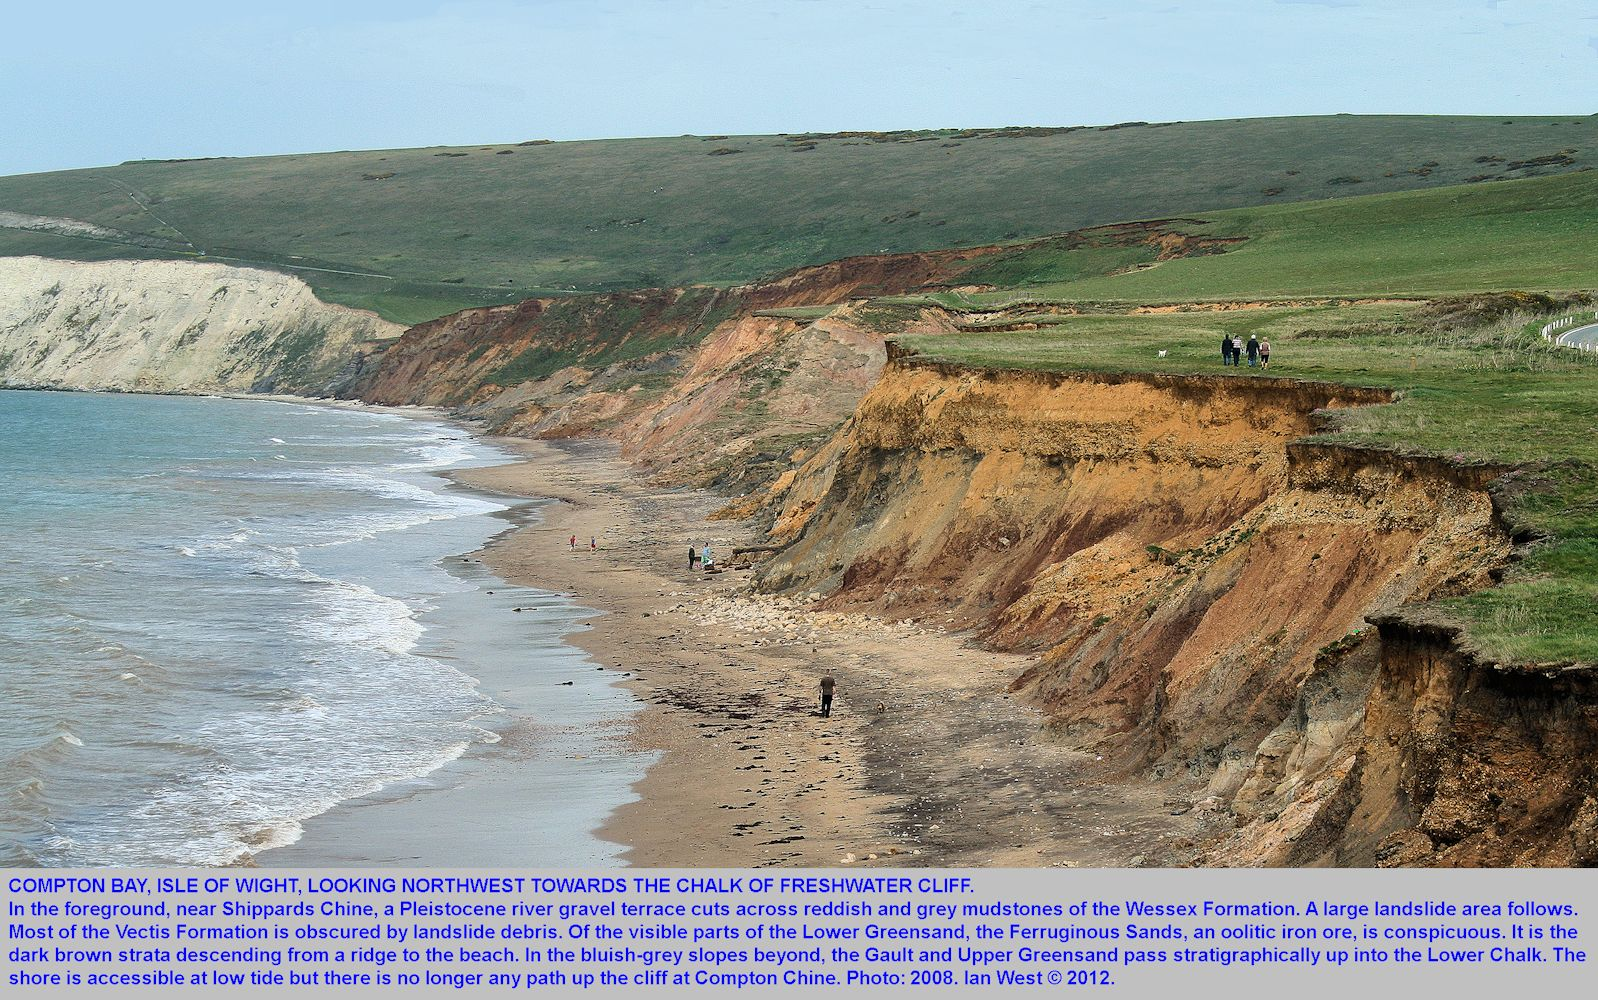 Cliffs of Cretaceous strata, and a landslide in Compton Bay, Isle of Wight, 2008